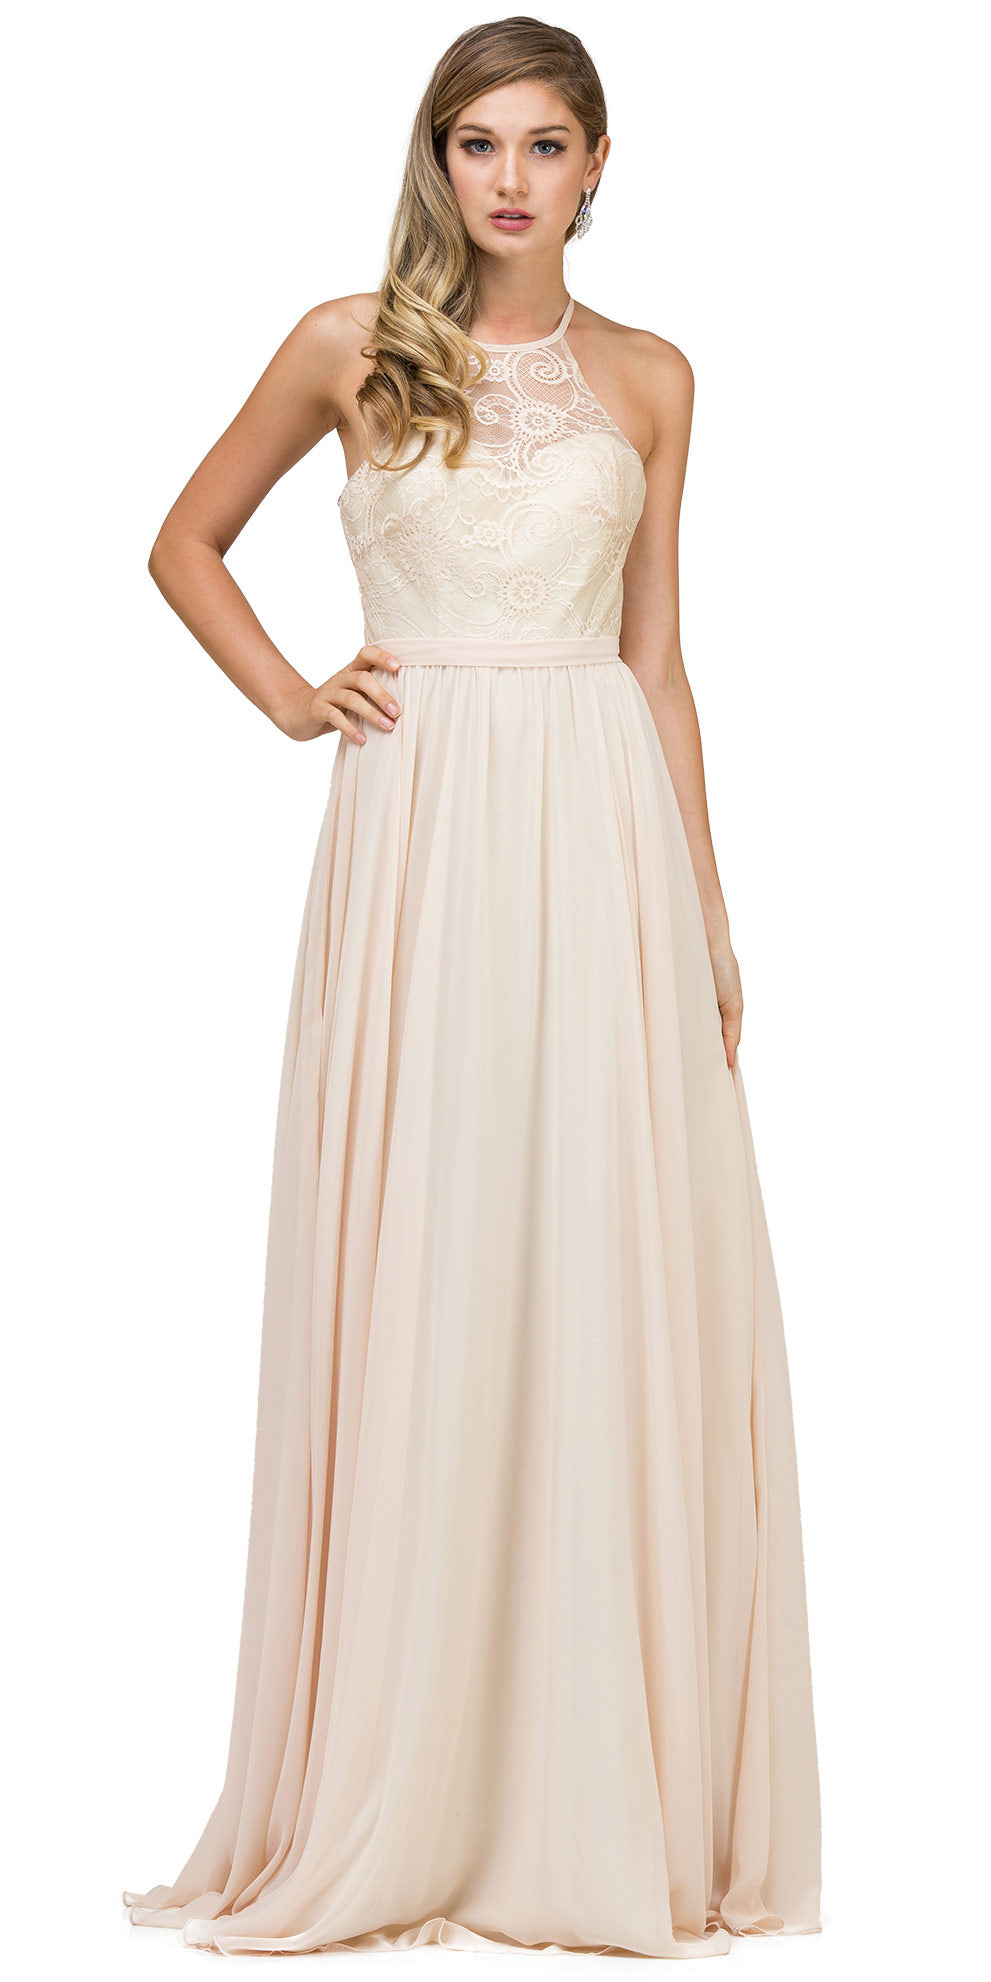 Image of Lace Bodice Criss Cross Back Long Bridesmaid Dress in Champaign